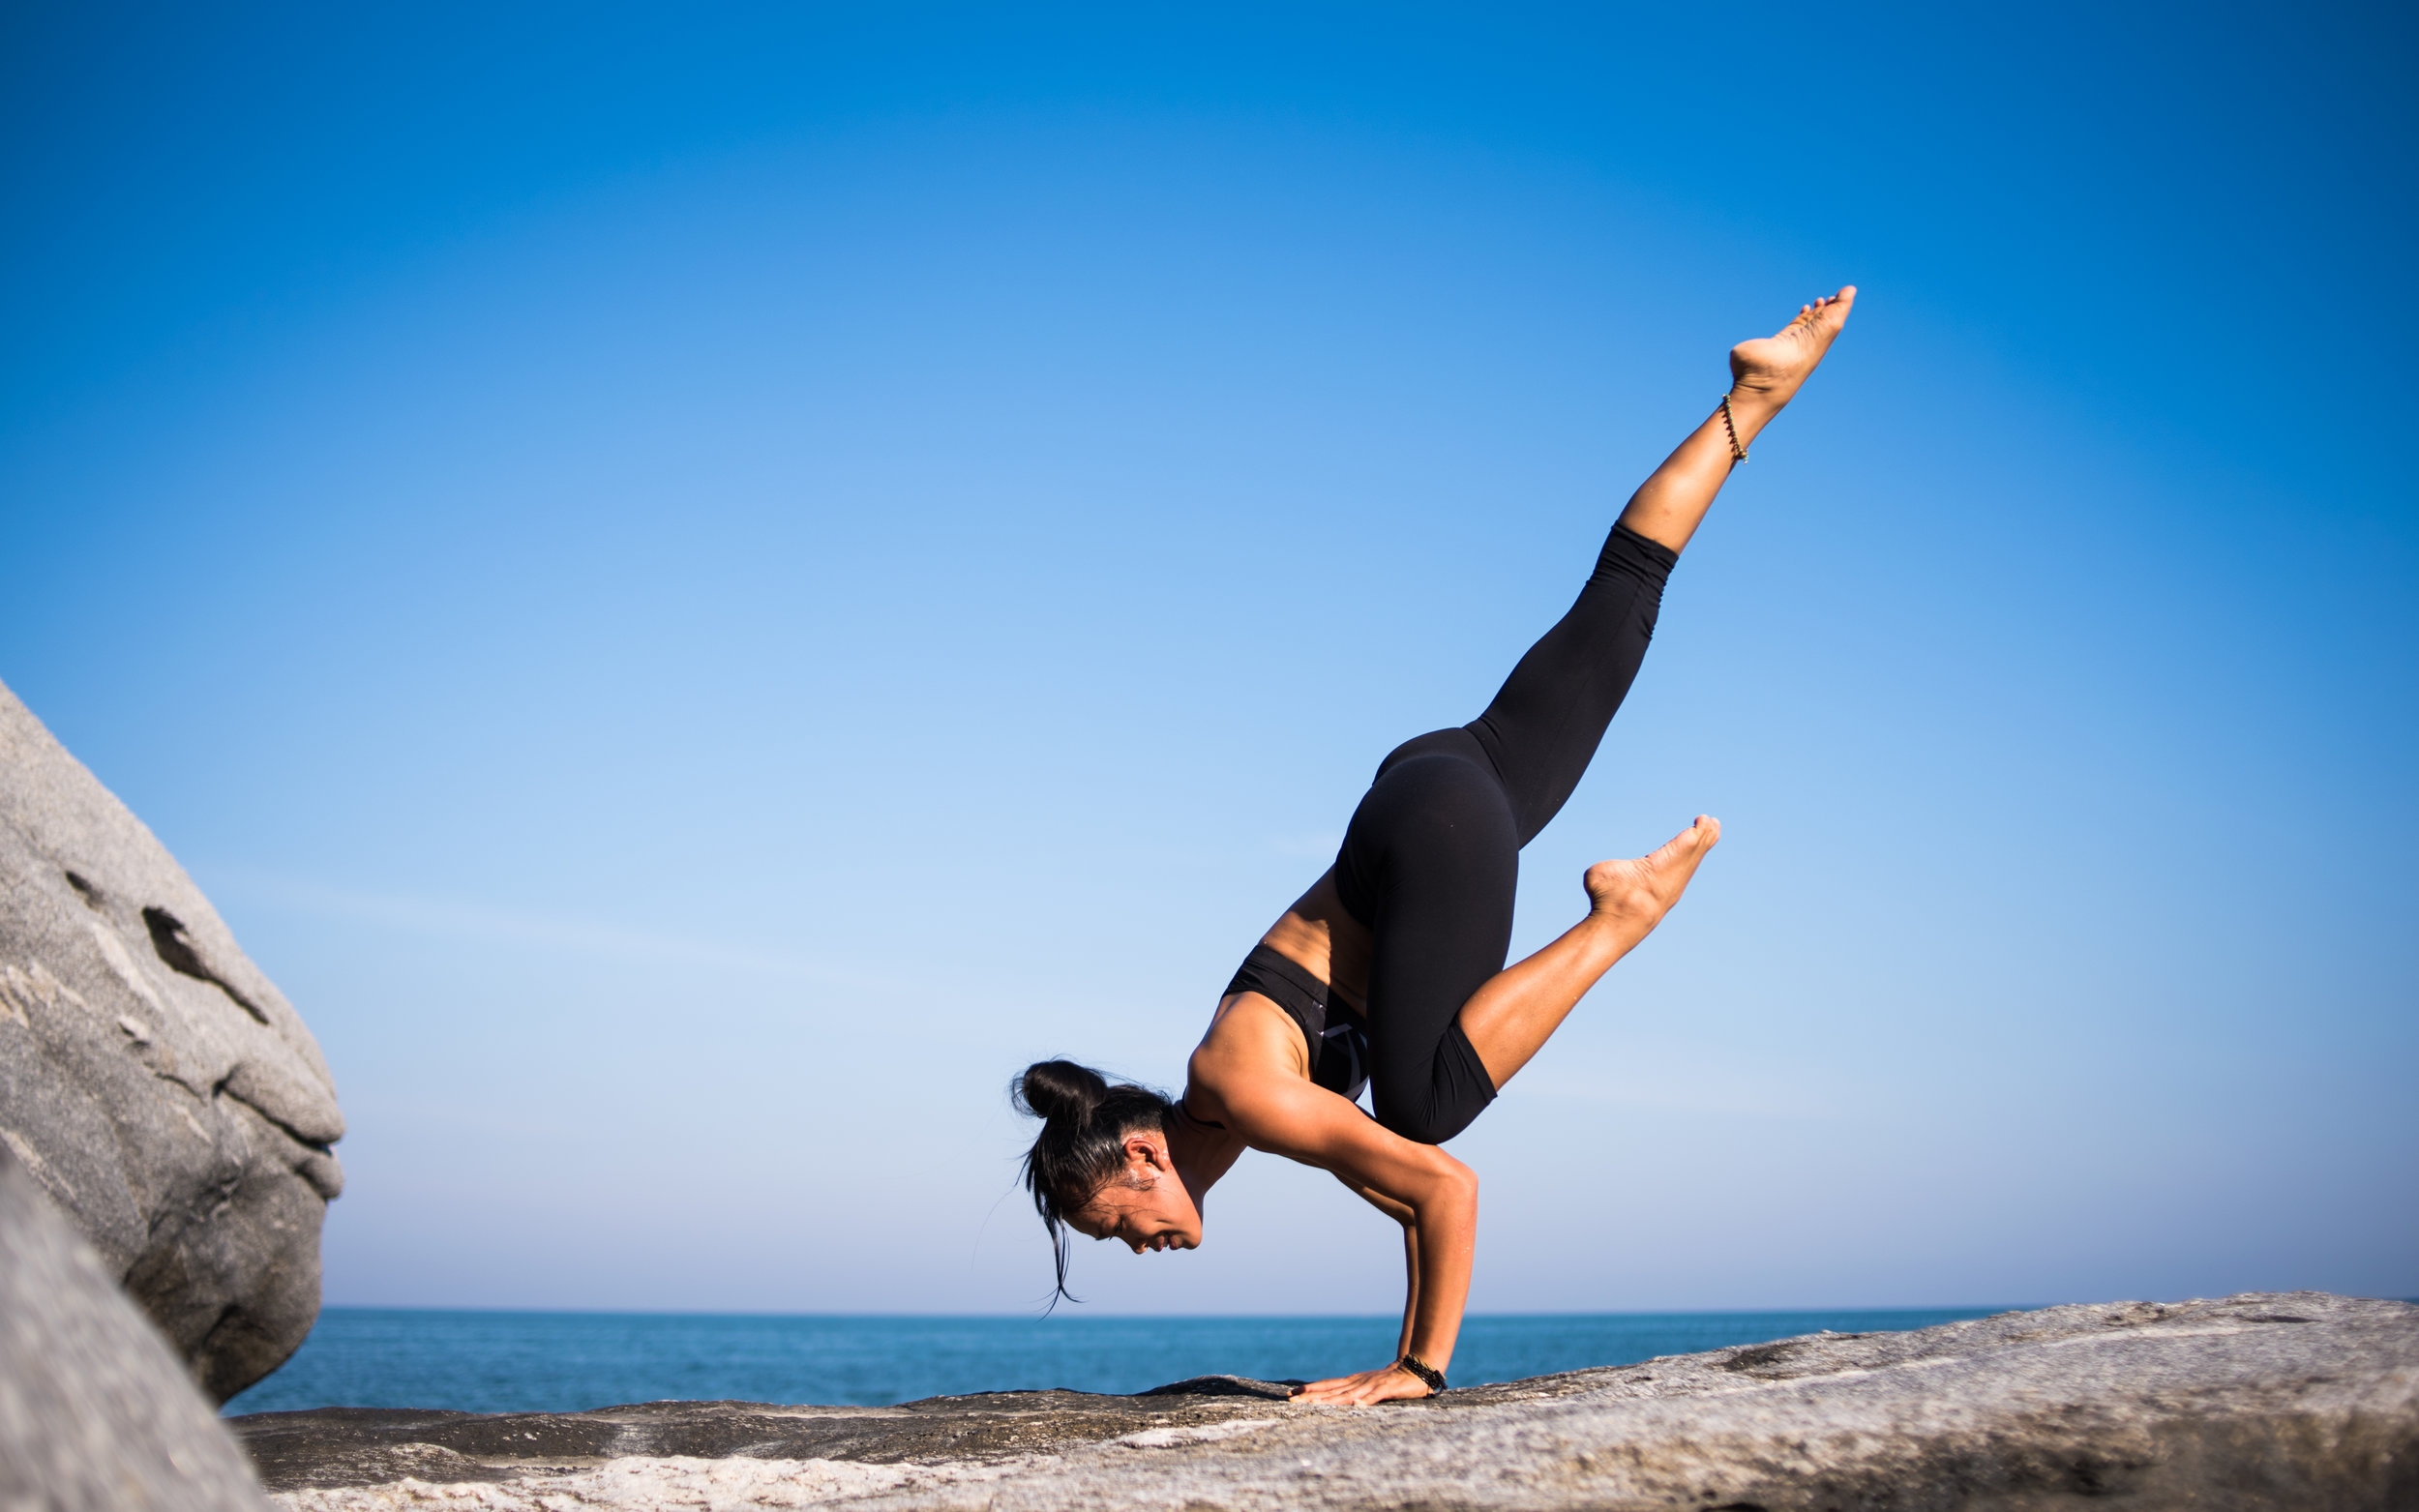 The top 8 supplements runners, yogis, rock climbers, fitness addicts, gym rats, and all athletes can use to help speed up recovery